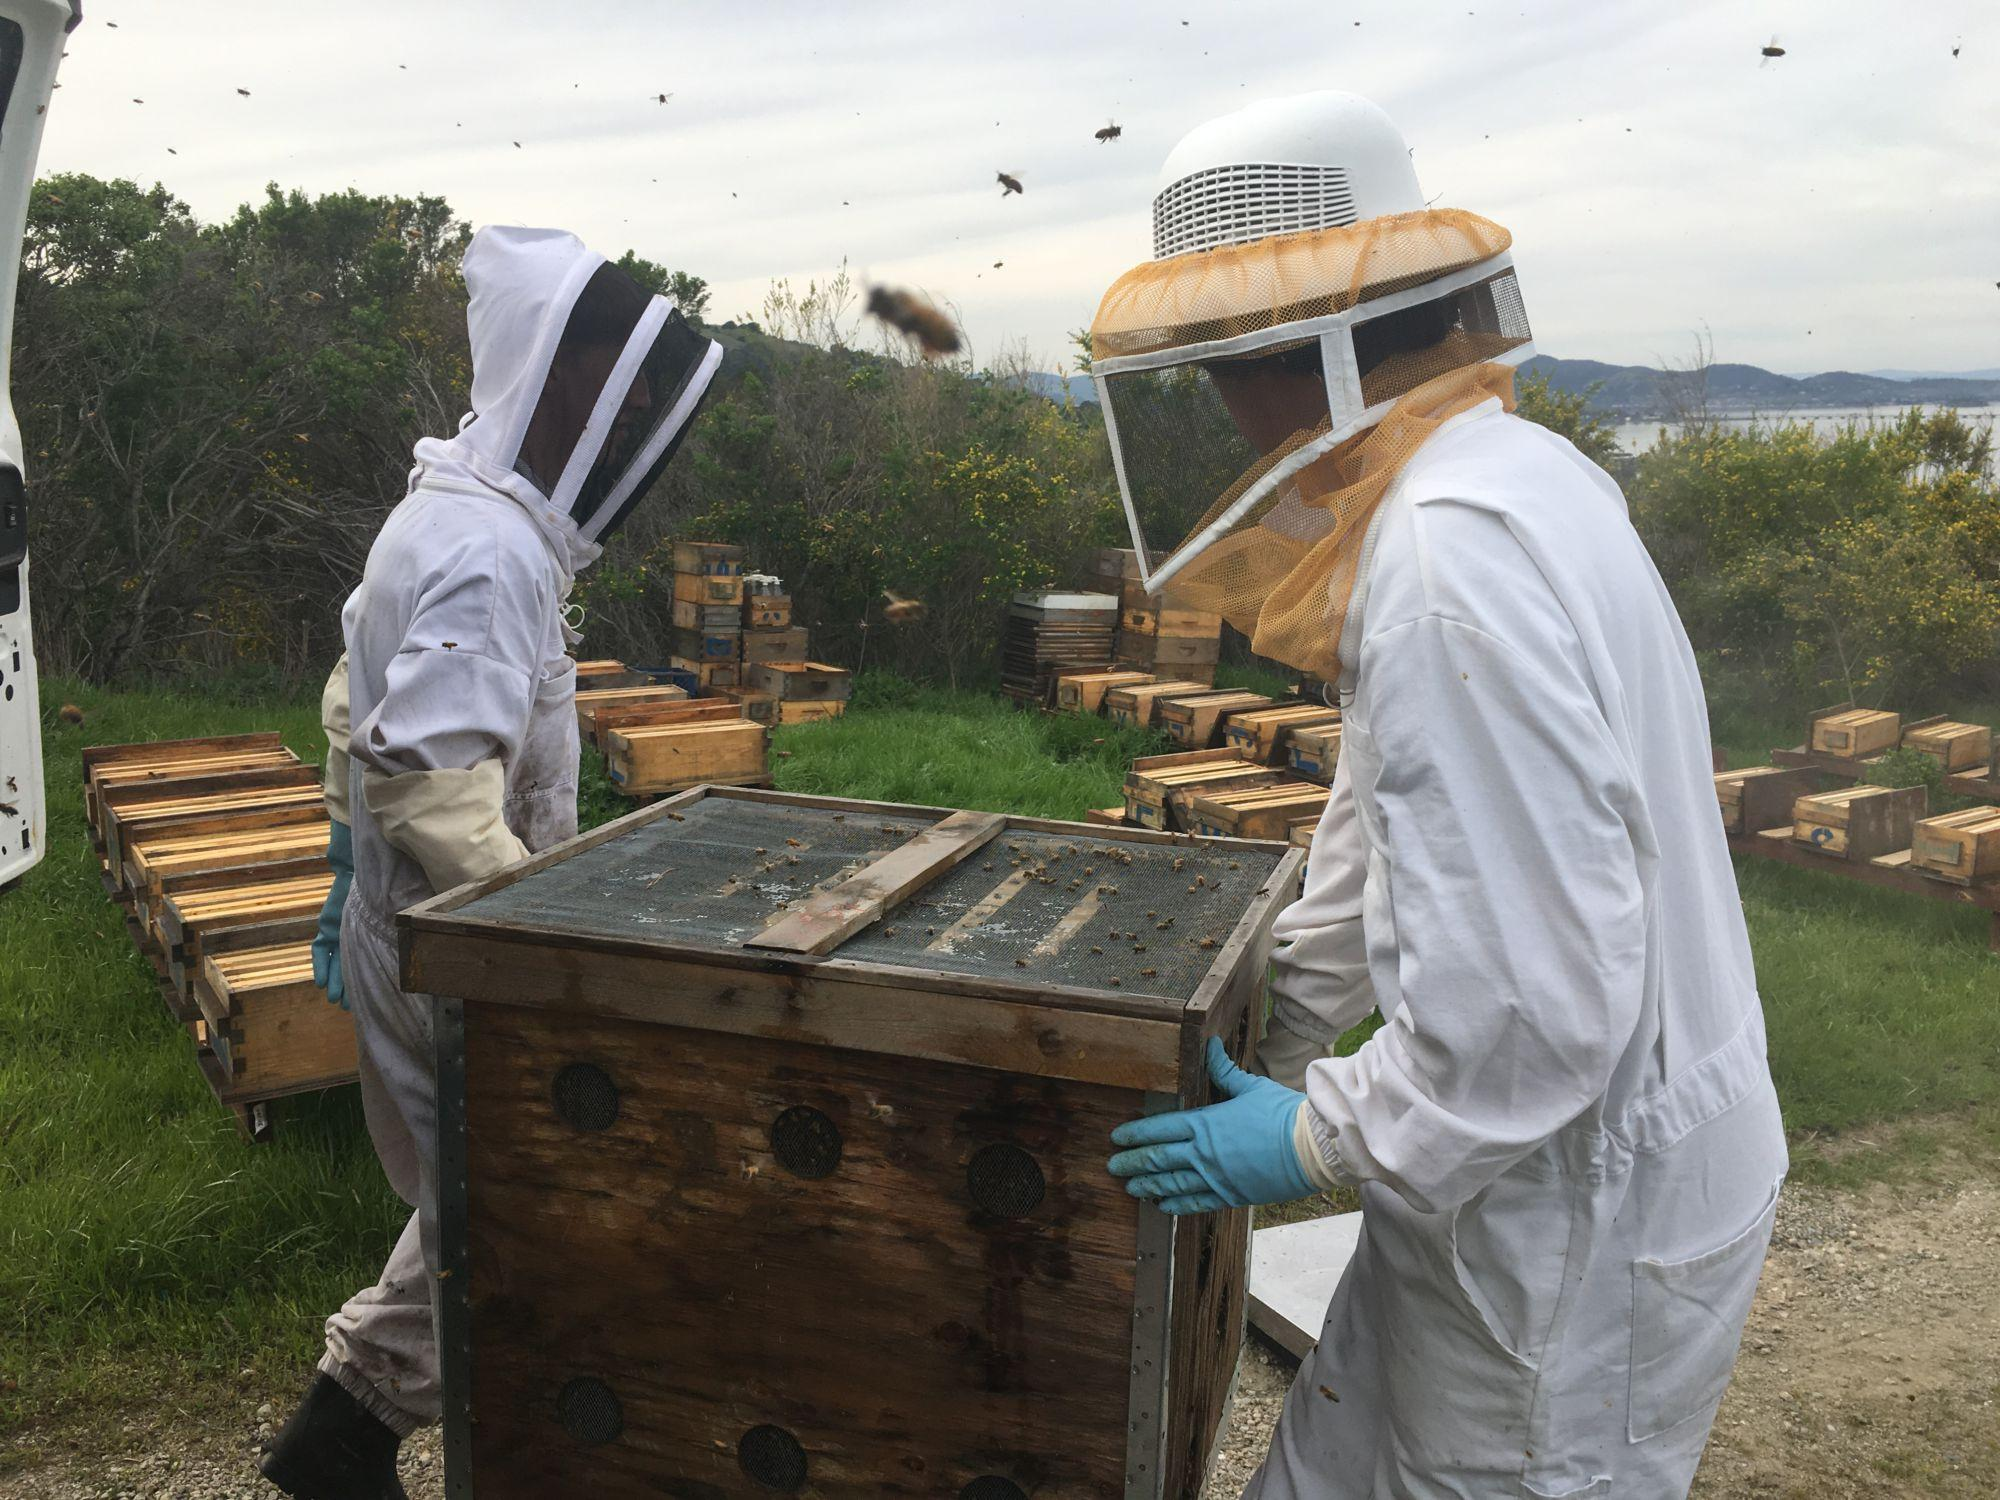 Bee community endangered, revitalized by avid beekeeping